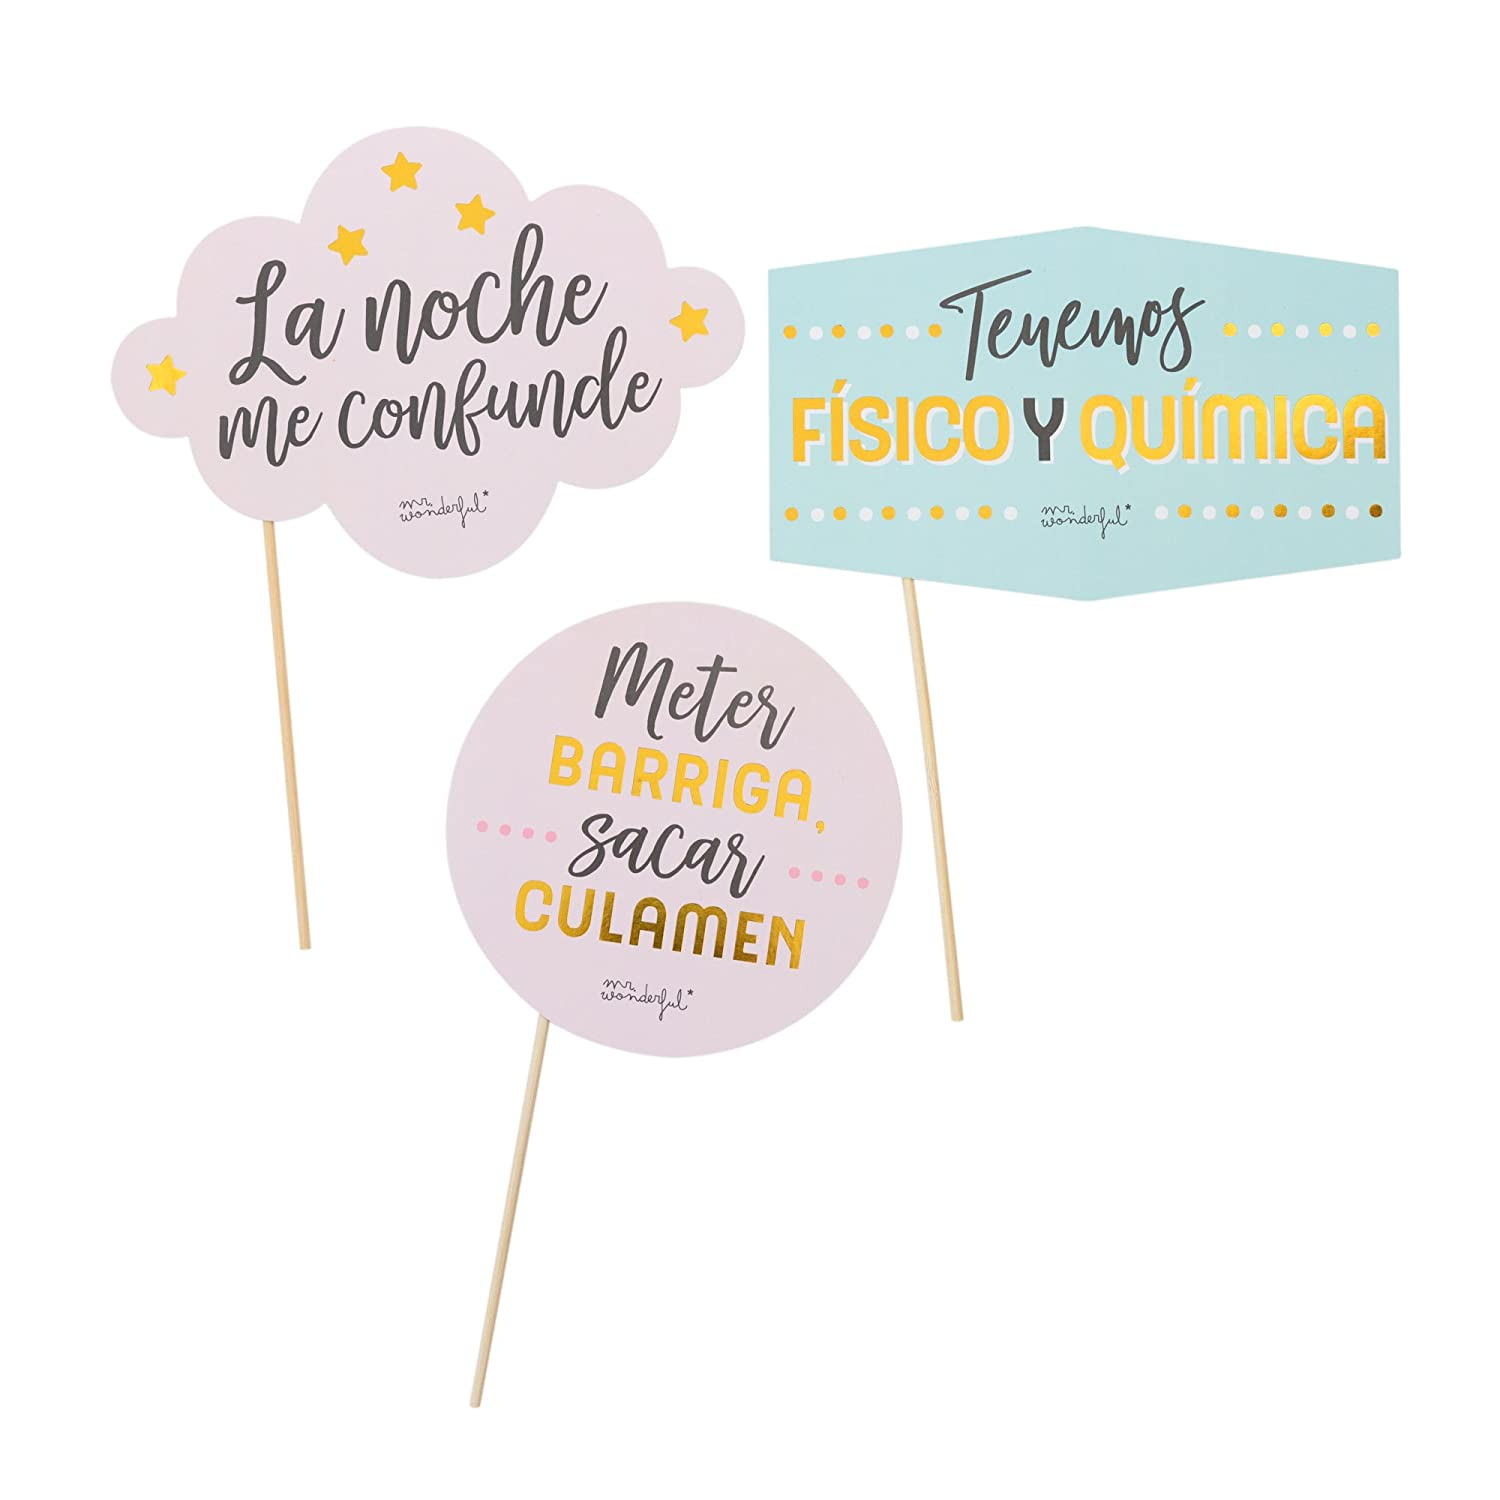 Mr; Wonderful Woa08938Es Accesorios Mr; Wonderful Para Photocall - Mensajes, 20X0.5X31 Cm: Amazon.es: Oficina y papelería